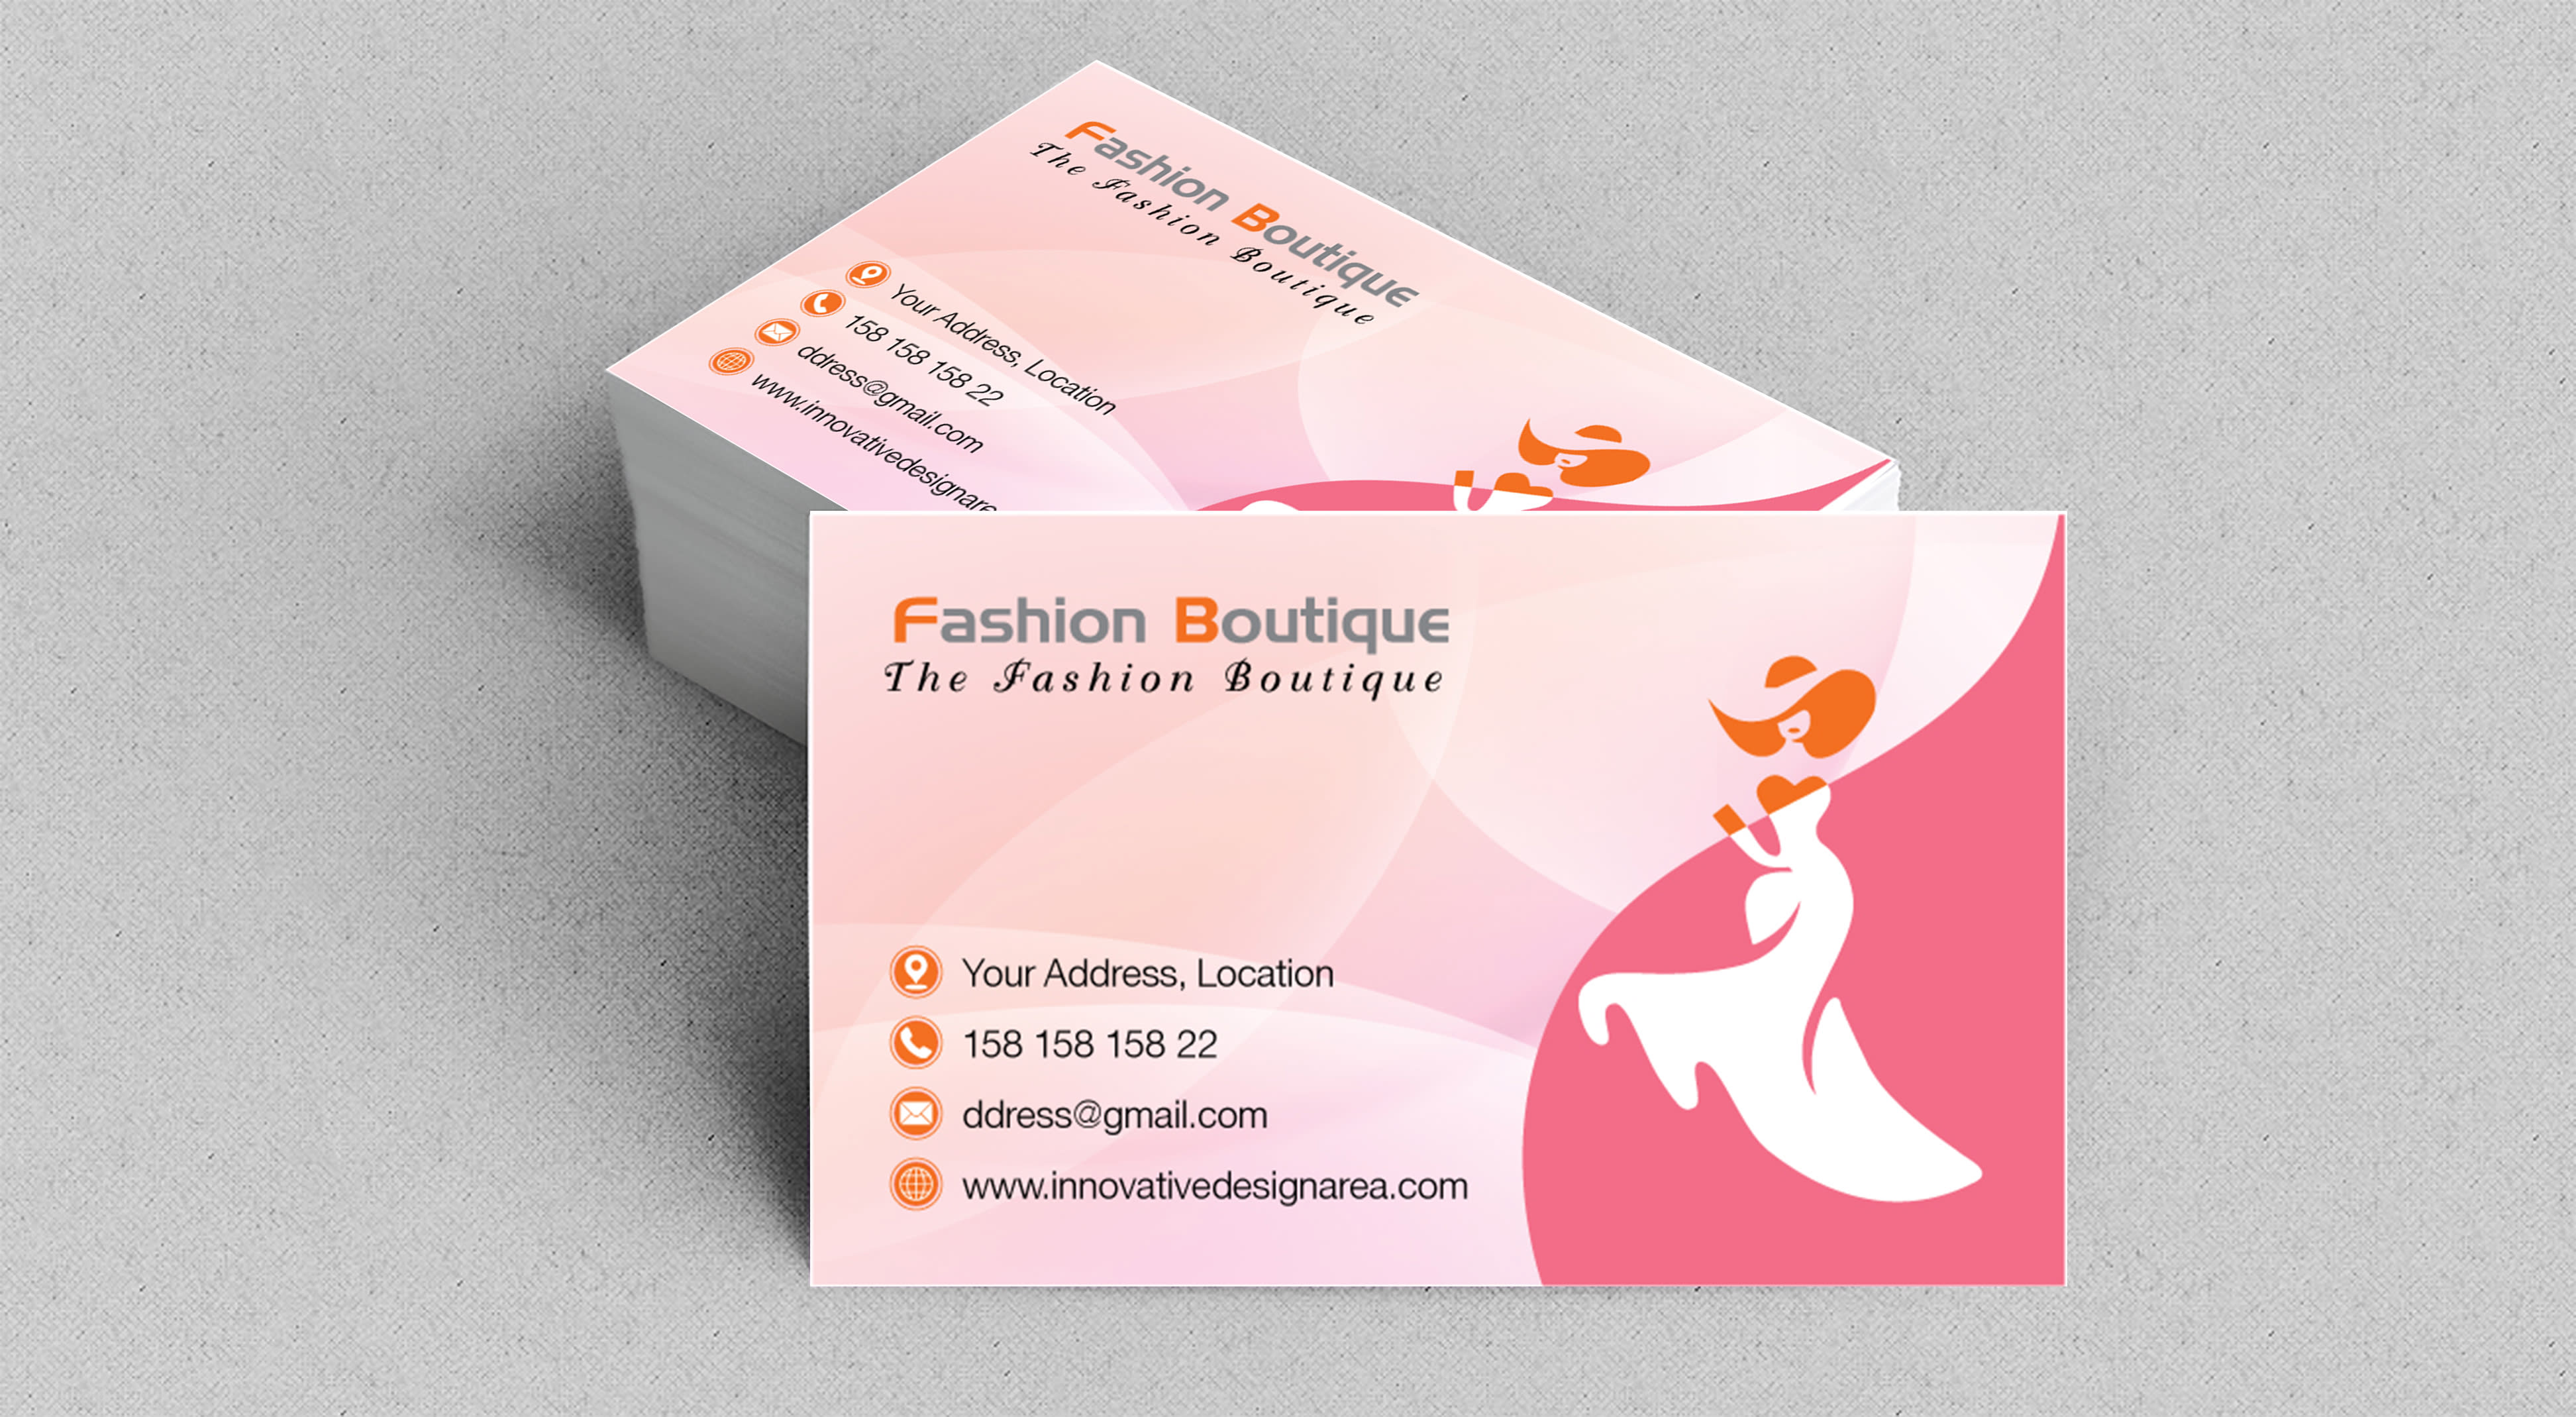 Business Card Three Design With One Theme By Designareabd